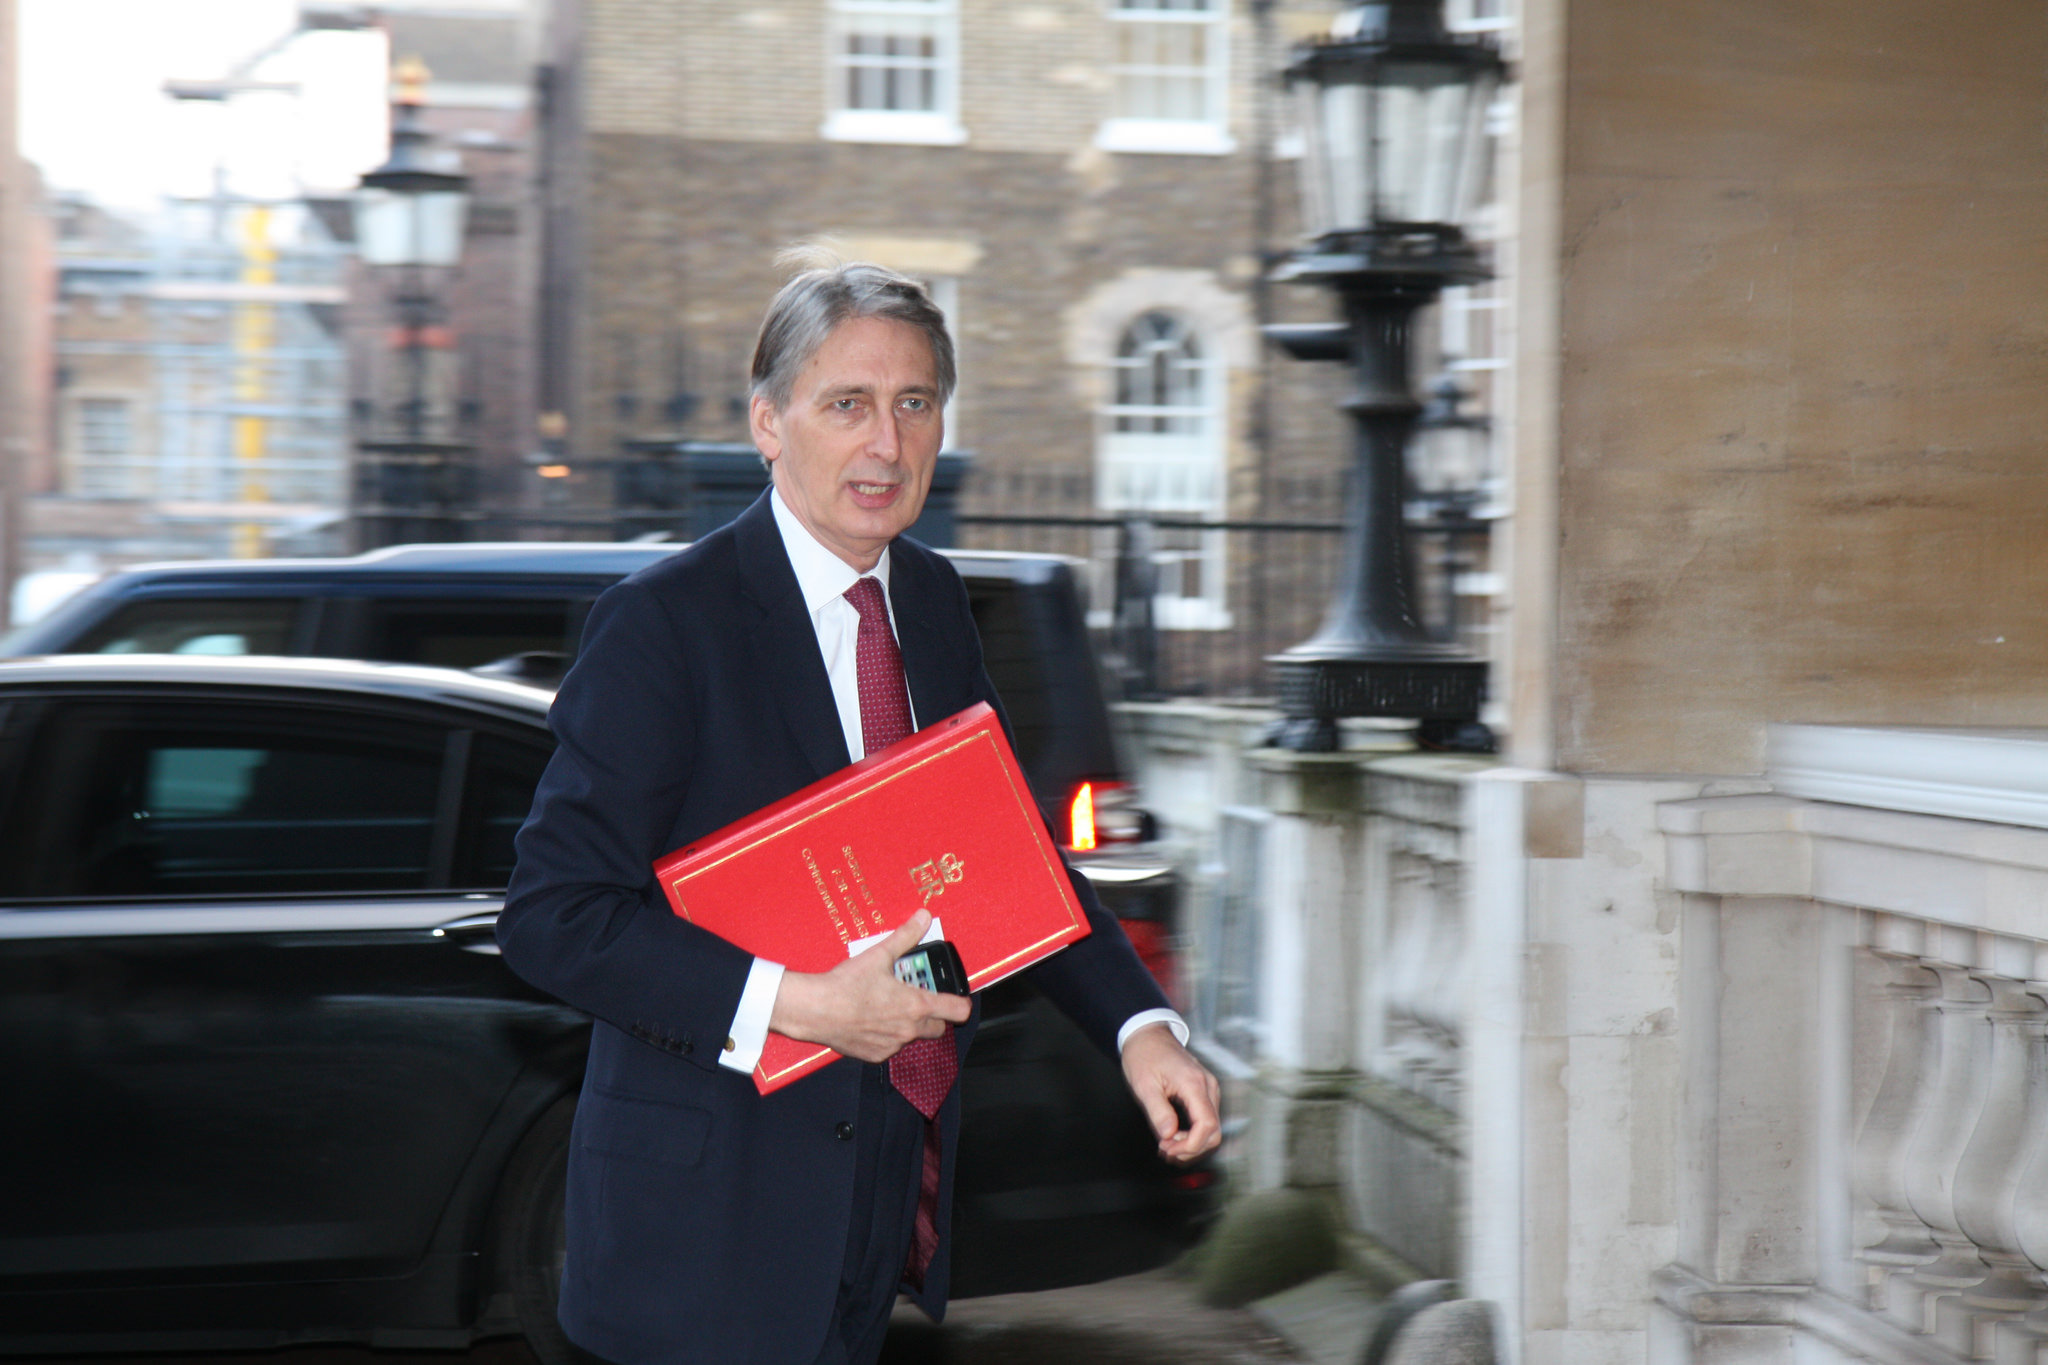 Chancellor of the Exchequer Philip Hammond arriving for a meeting in 2015